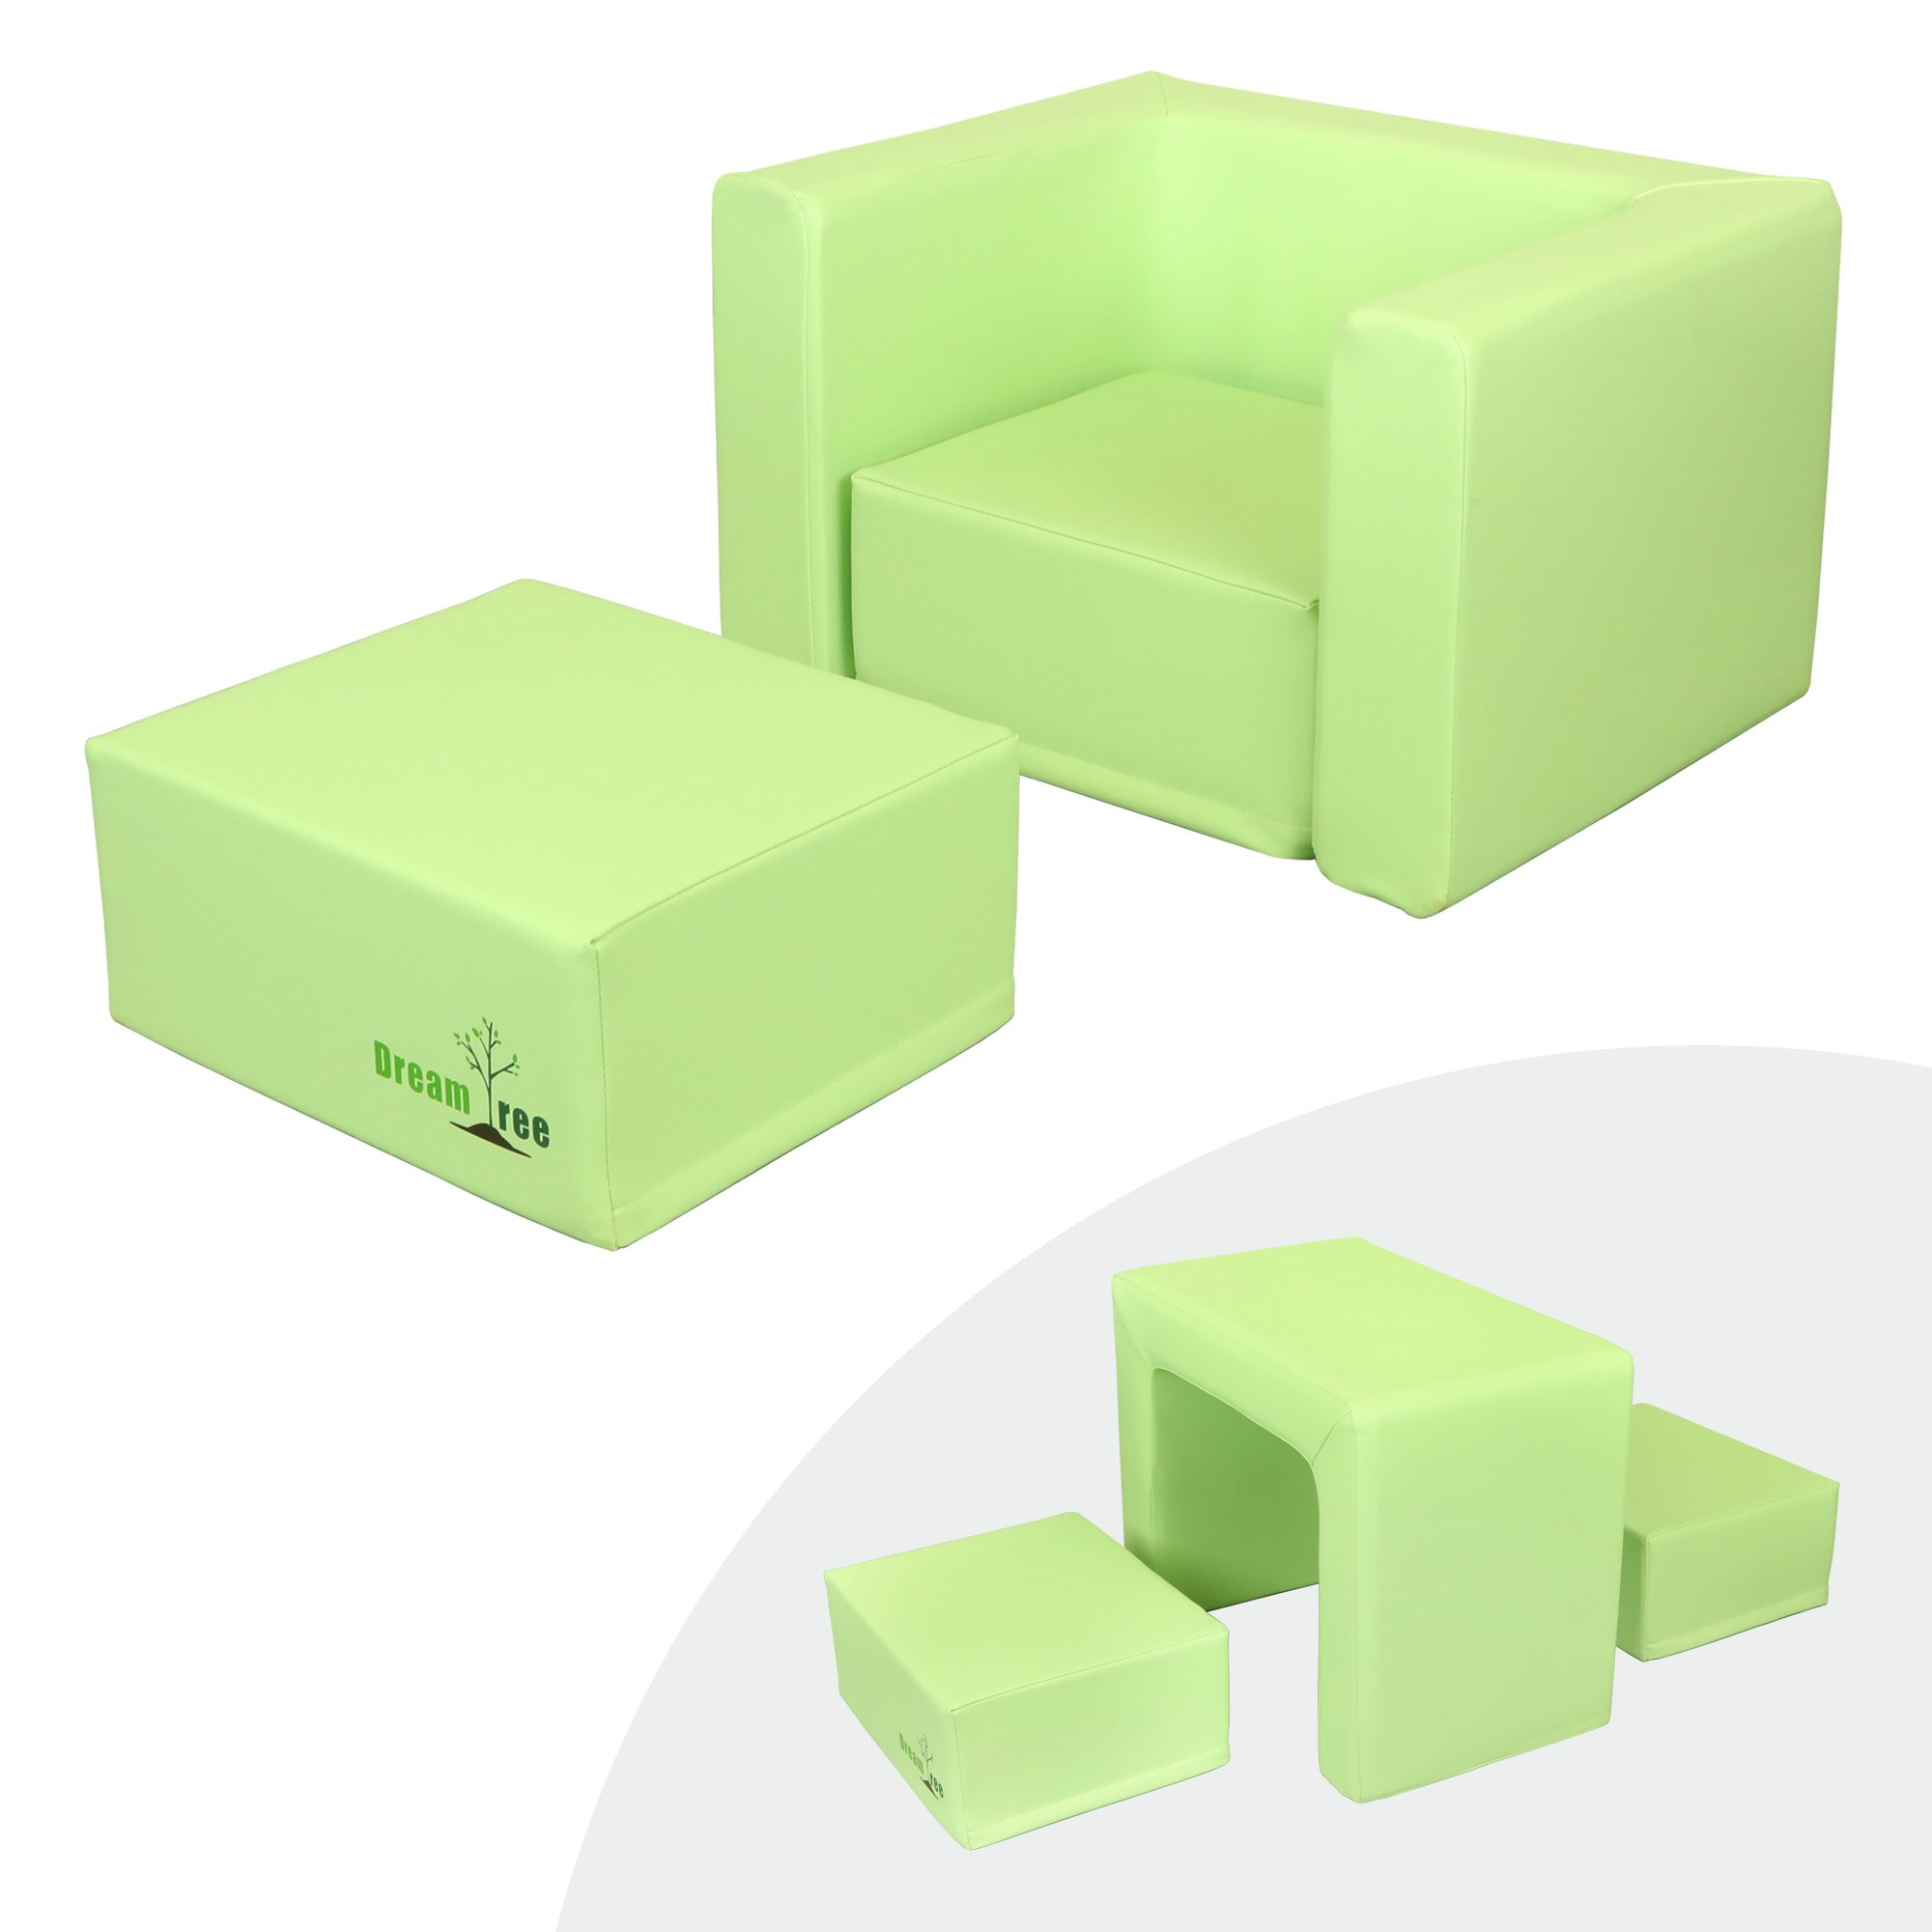 Dream Tree Toddler Table and Chair Set (Stool Type) Washable, Safe Non-Toxic CPSIA Compliant Soft Foam Furniture for Baby, Kids, and Child - Green